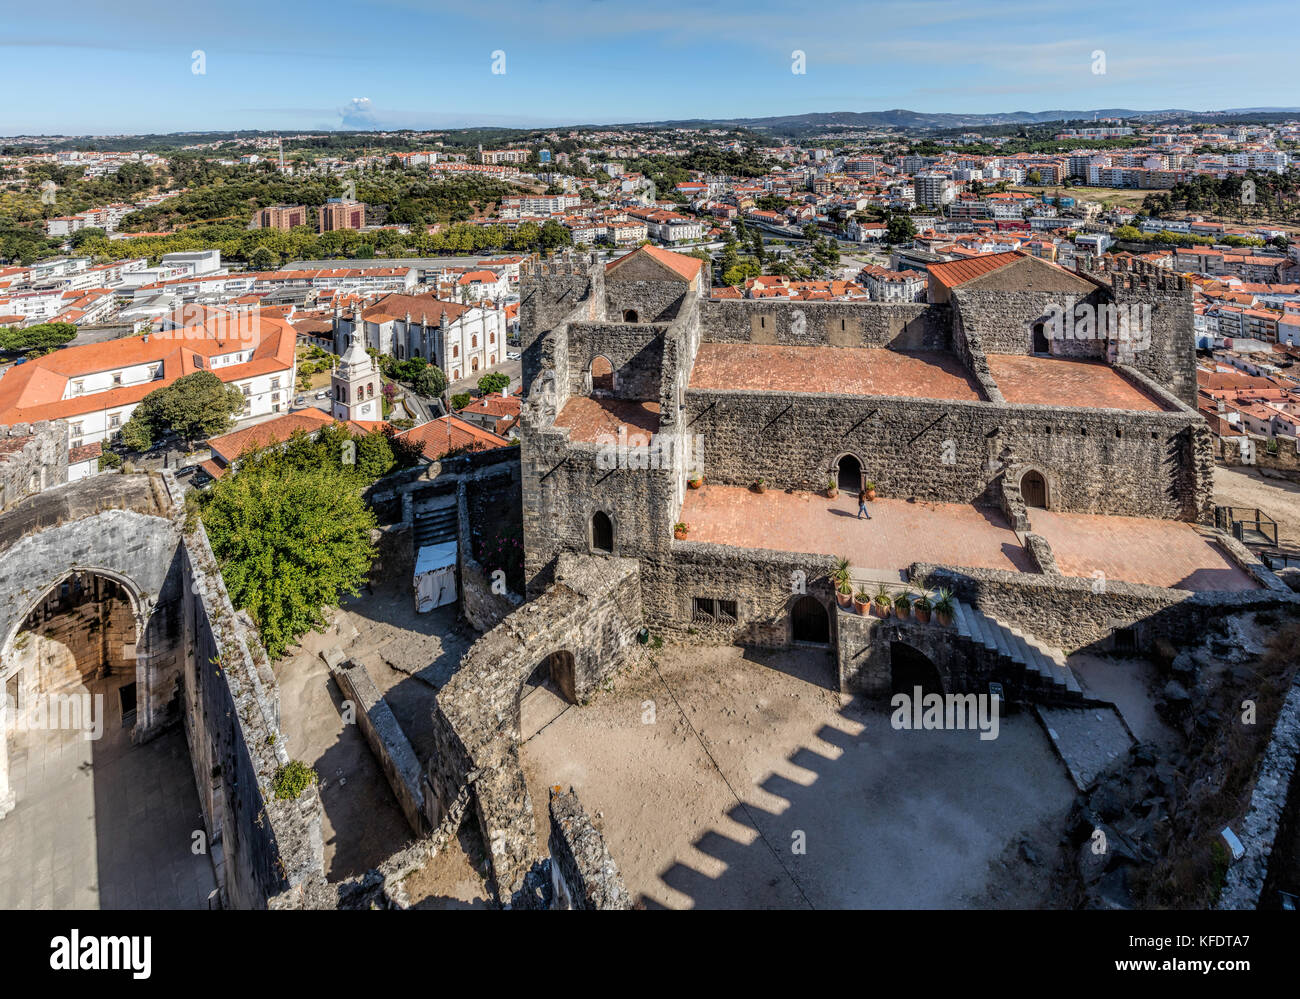 Medieval Castle of Leiria in Portugal, constructed by order of the first king of Portugal, Afonso Henriques, in - Stock Image